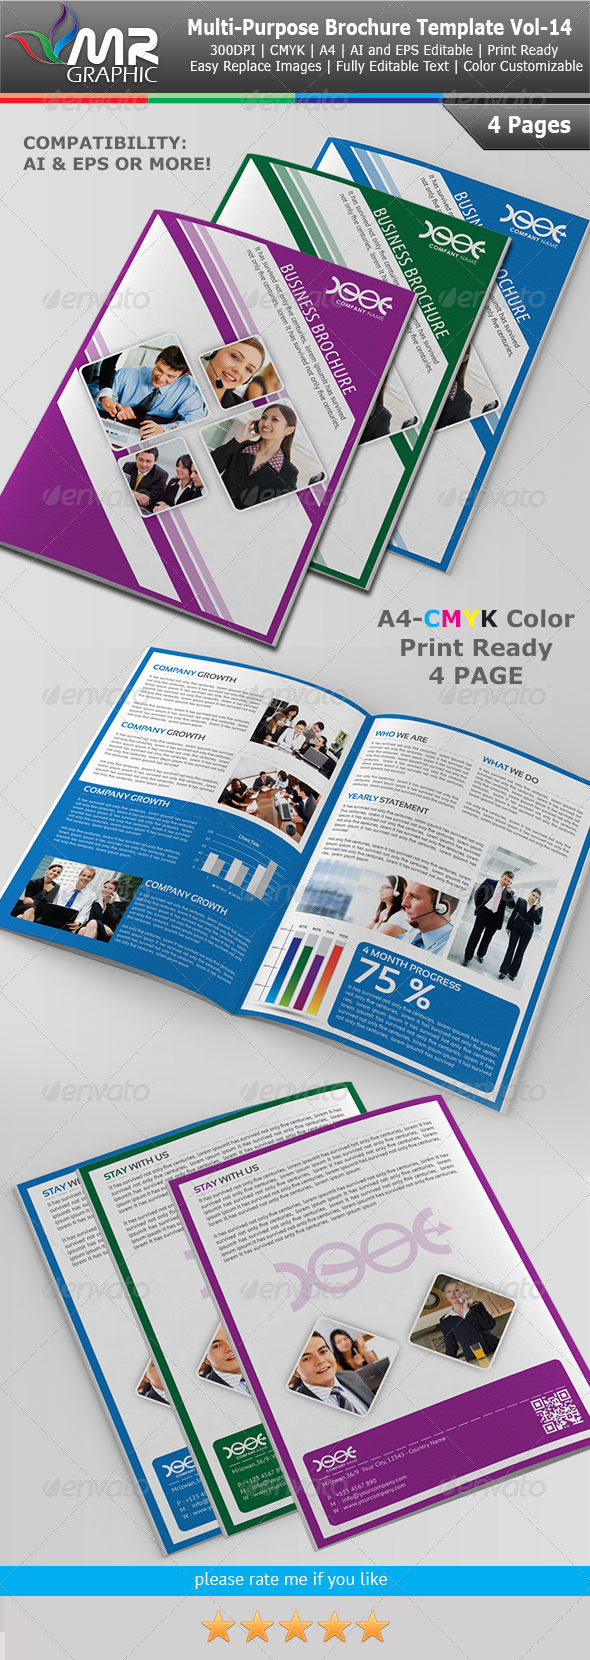 Multipurpose Business Brochure Vol-14 - Corporate Brochures